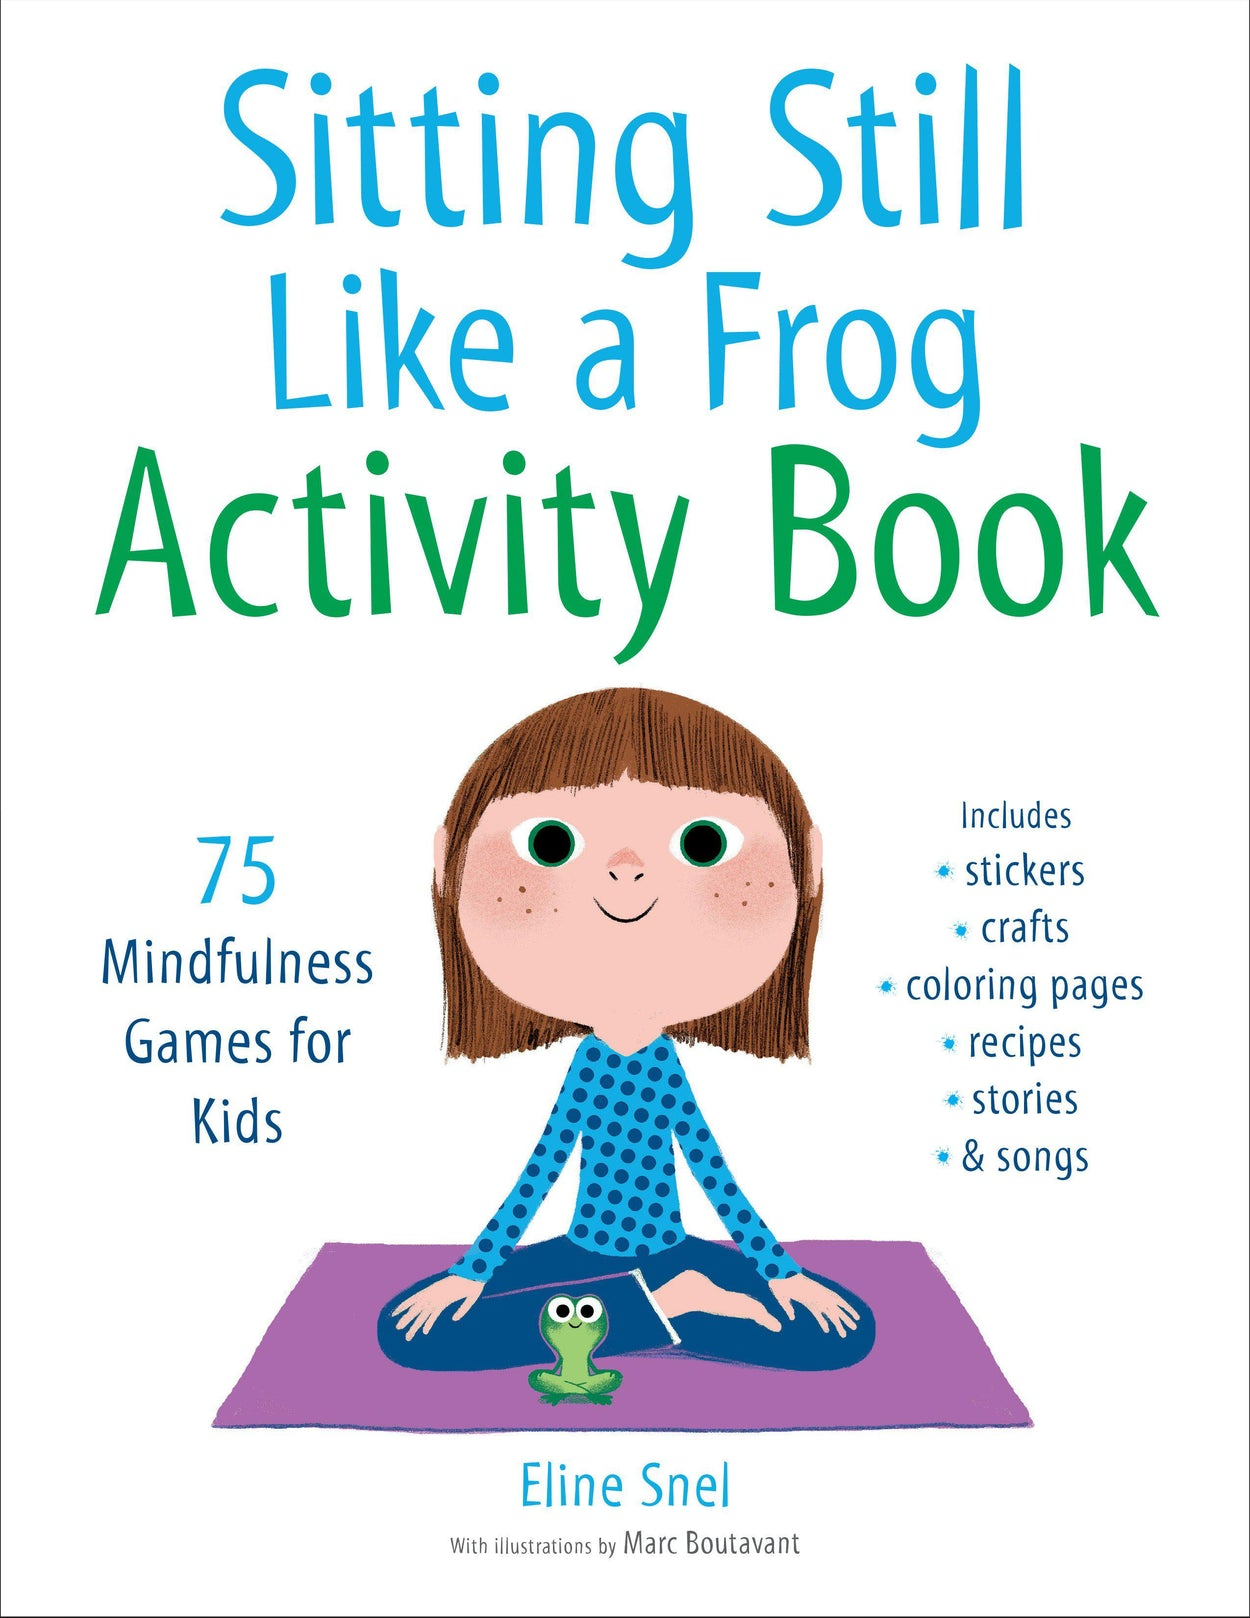 Sitting Still Like a Frog Activity Book-Eline Snel-Paperback / softback Trade paperback (US)-Crying Out Loud